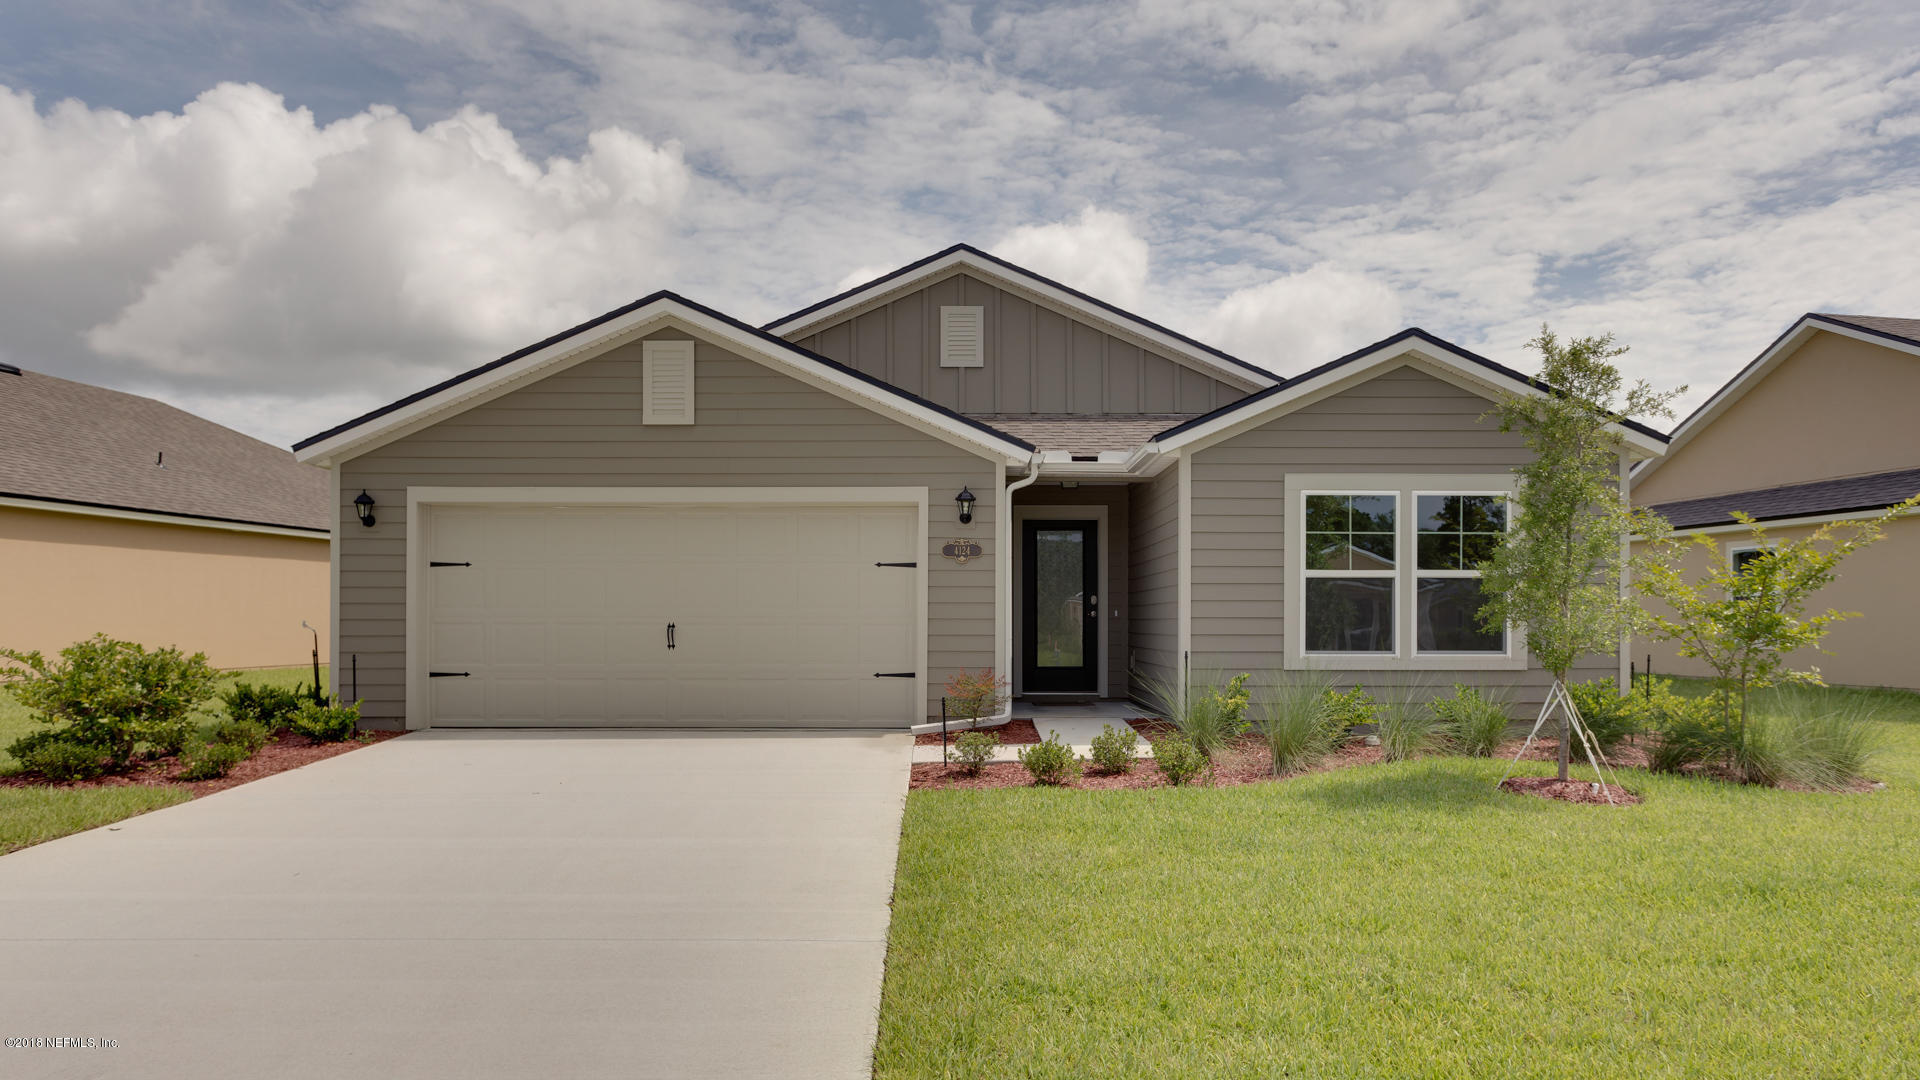 4124 SPRING CREEK, MIDDLEBURG, FLORIDA 32068, 3 Bedrooms Bedrooms, ,2 BathroomsBathrooms,Residential - single family,For sale,SPRING CREEK,909253